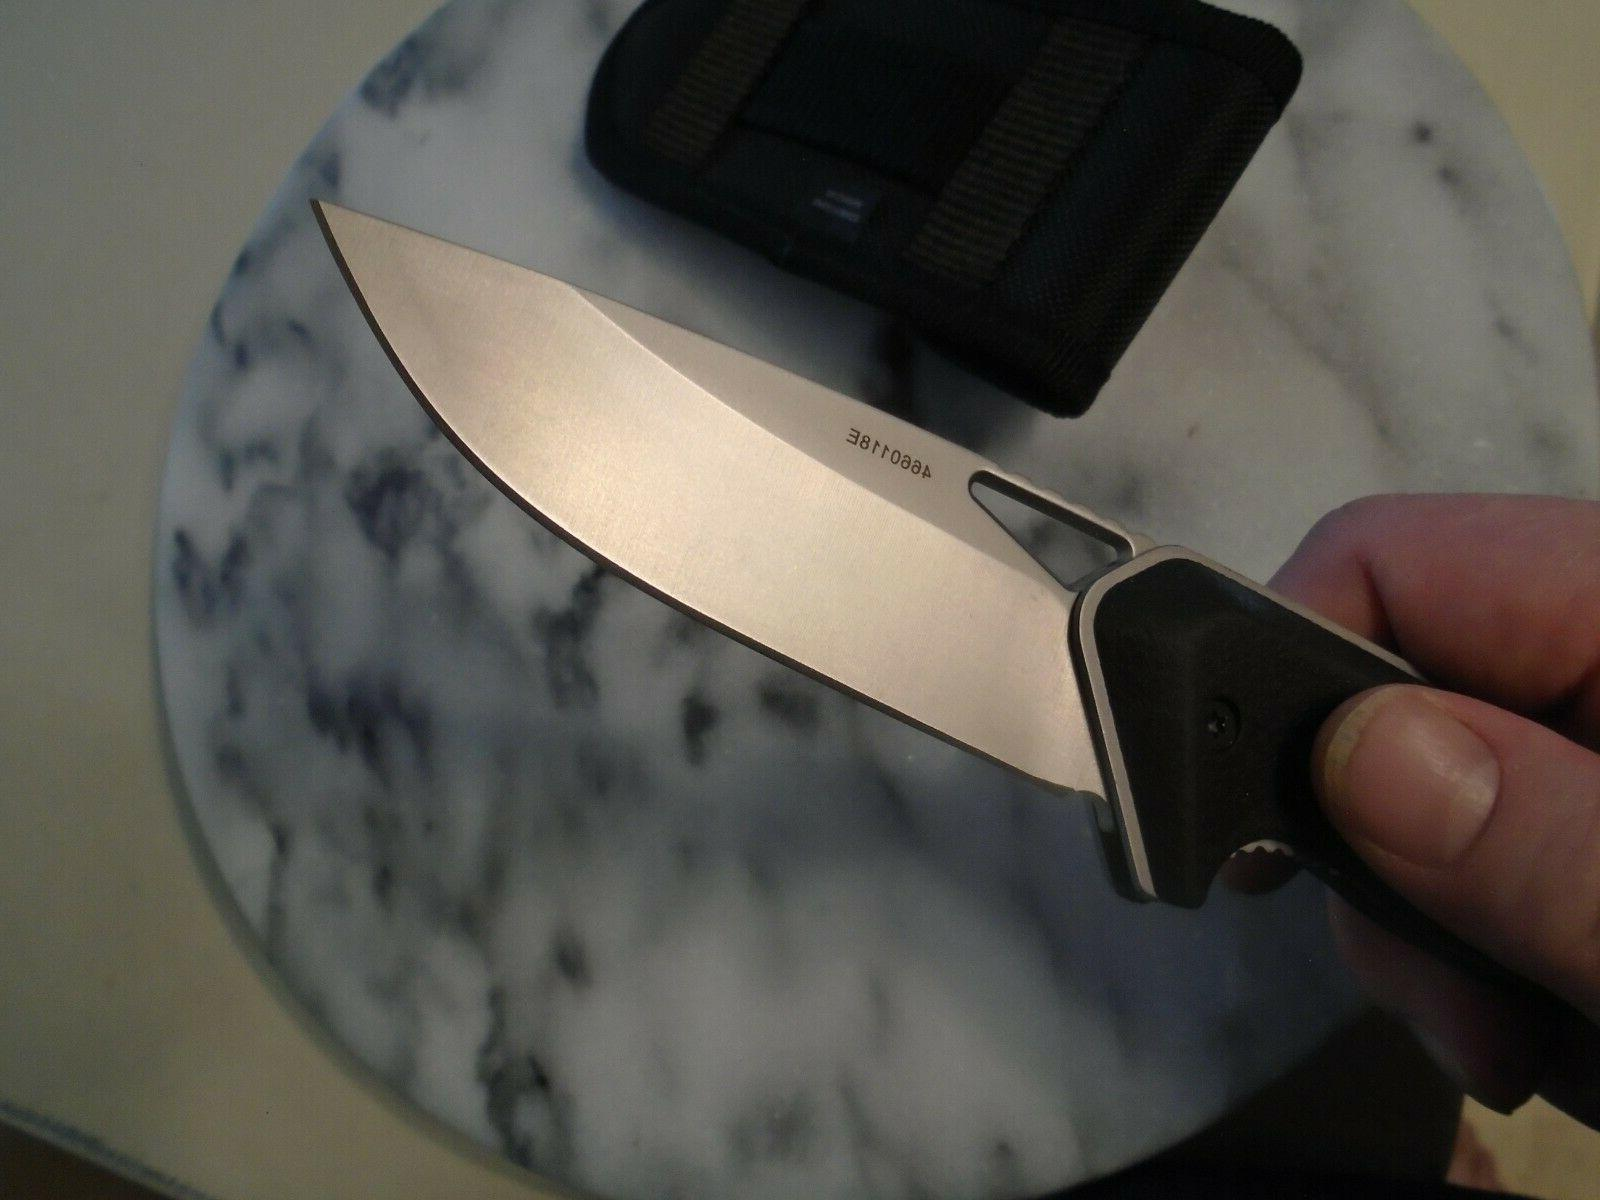 Gerber Folding Hunter Skinner W 002209 1/2""